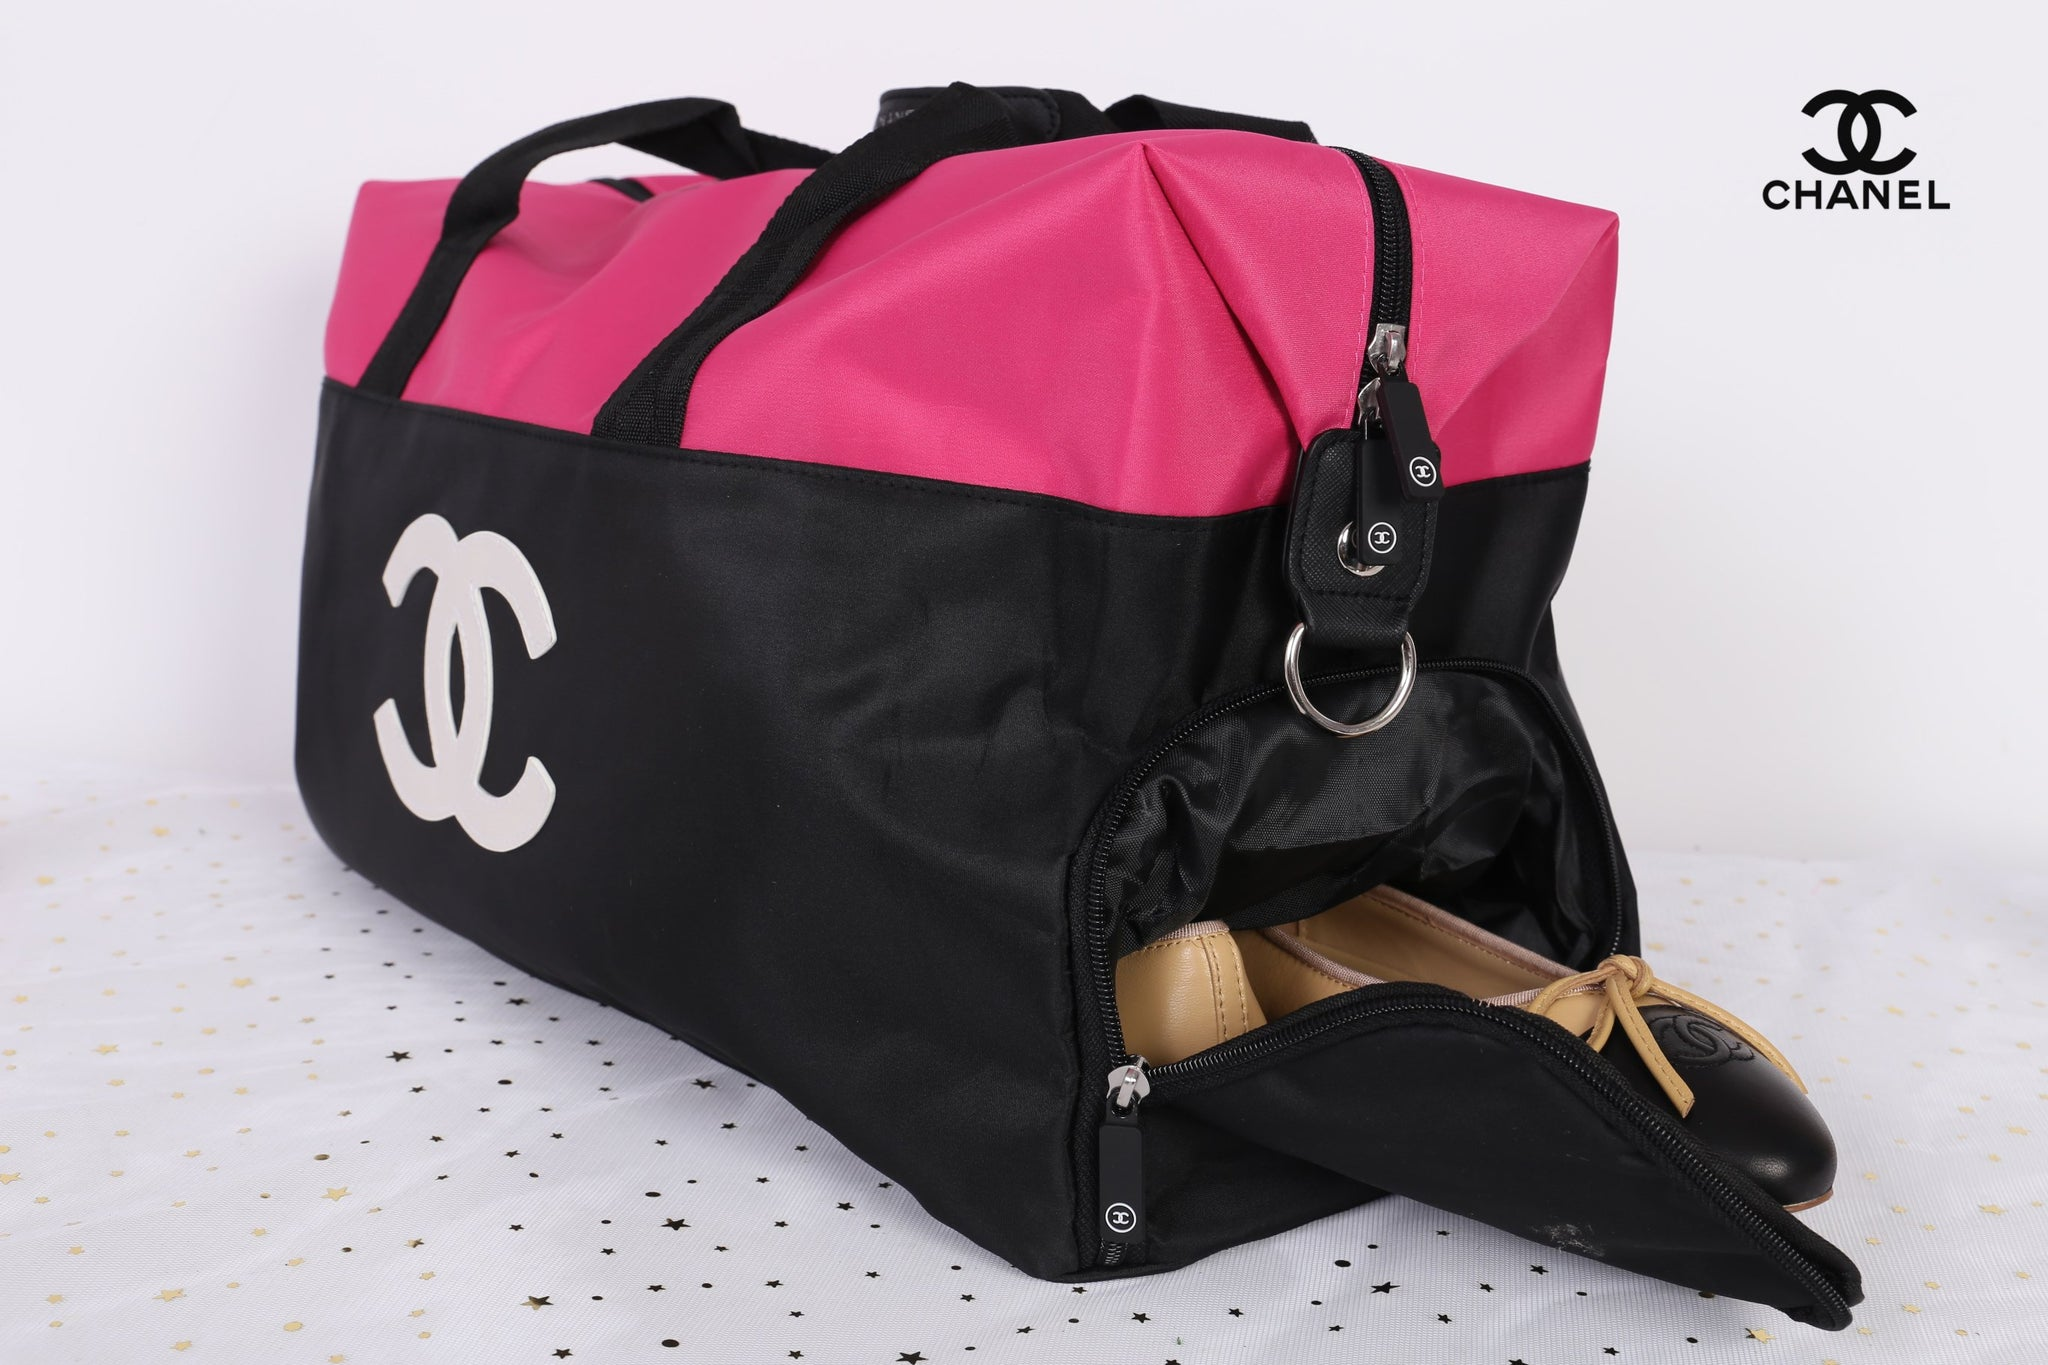 ce2d76054508e4 Chanel Pink White CC Logo Travel Gym Duffle Weekend Bag Large Vip Gift -  PARTYMOOD ...